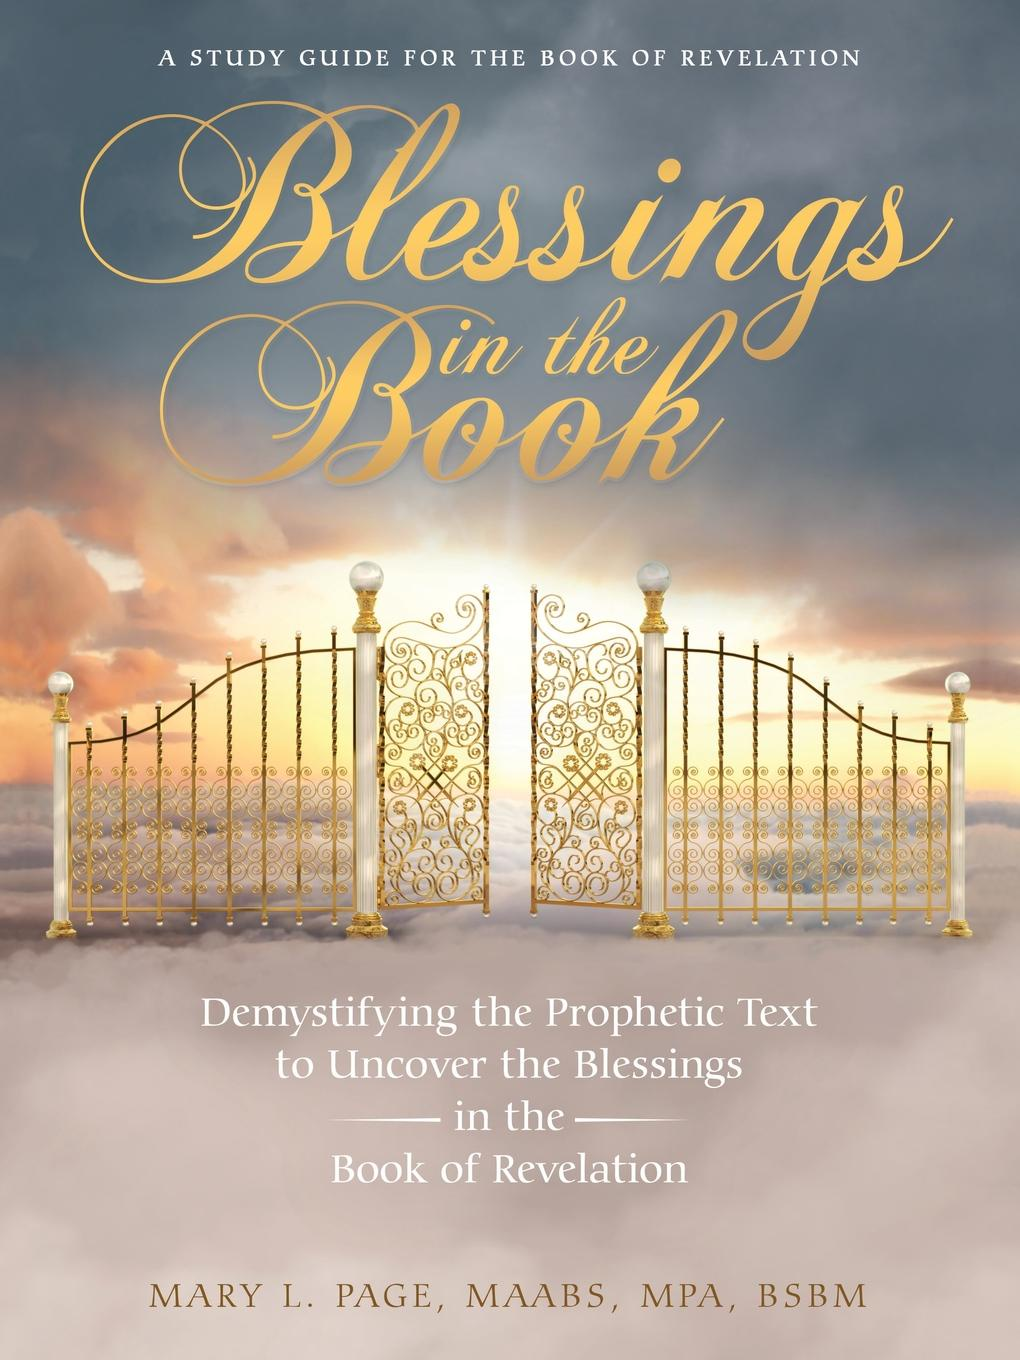 MAABS MPA BSBM Mary L. Page Blessings in the Book. Demystifying the Prophetic Text to Uncover the Blessings in the Book of Revelation mack smalley jr the crown the church the first the last revelation a study guide